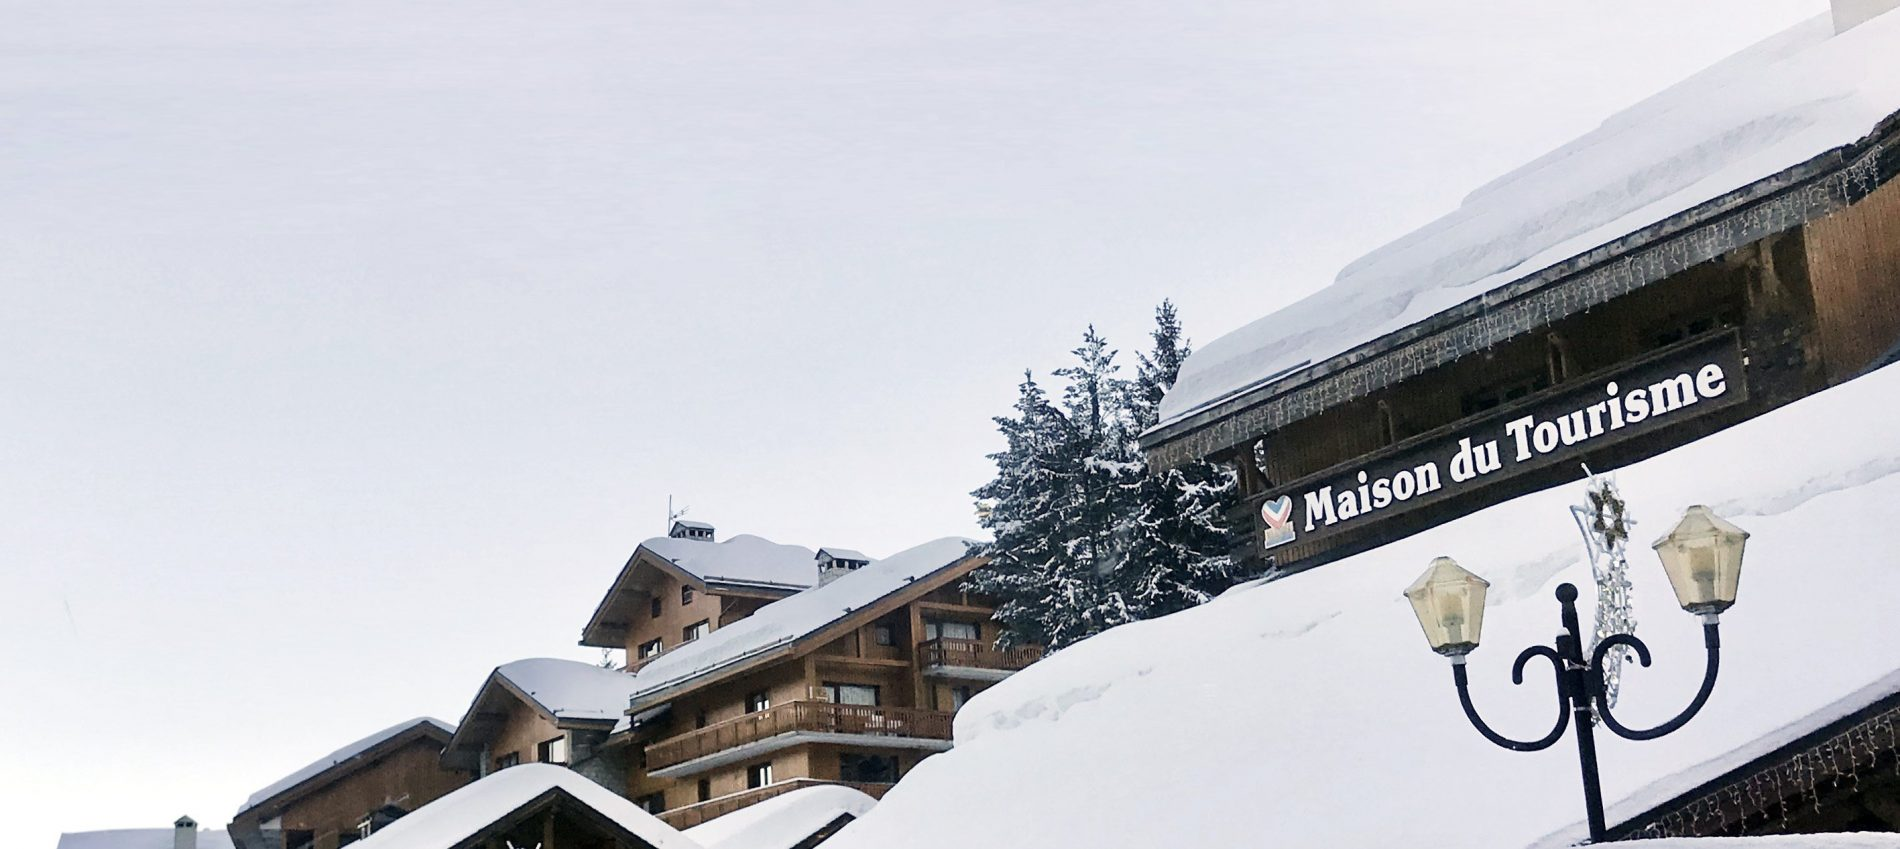 Les 3 Vallées: Staying at Hotel Doron in Méribel